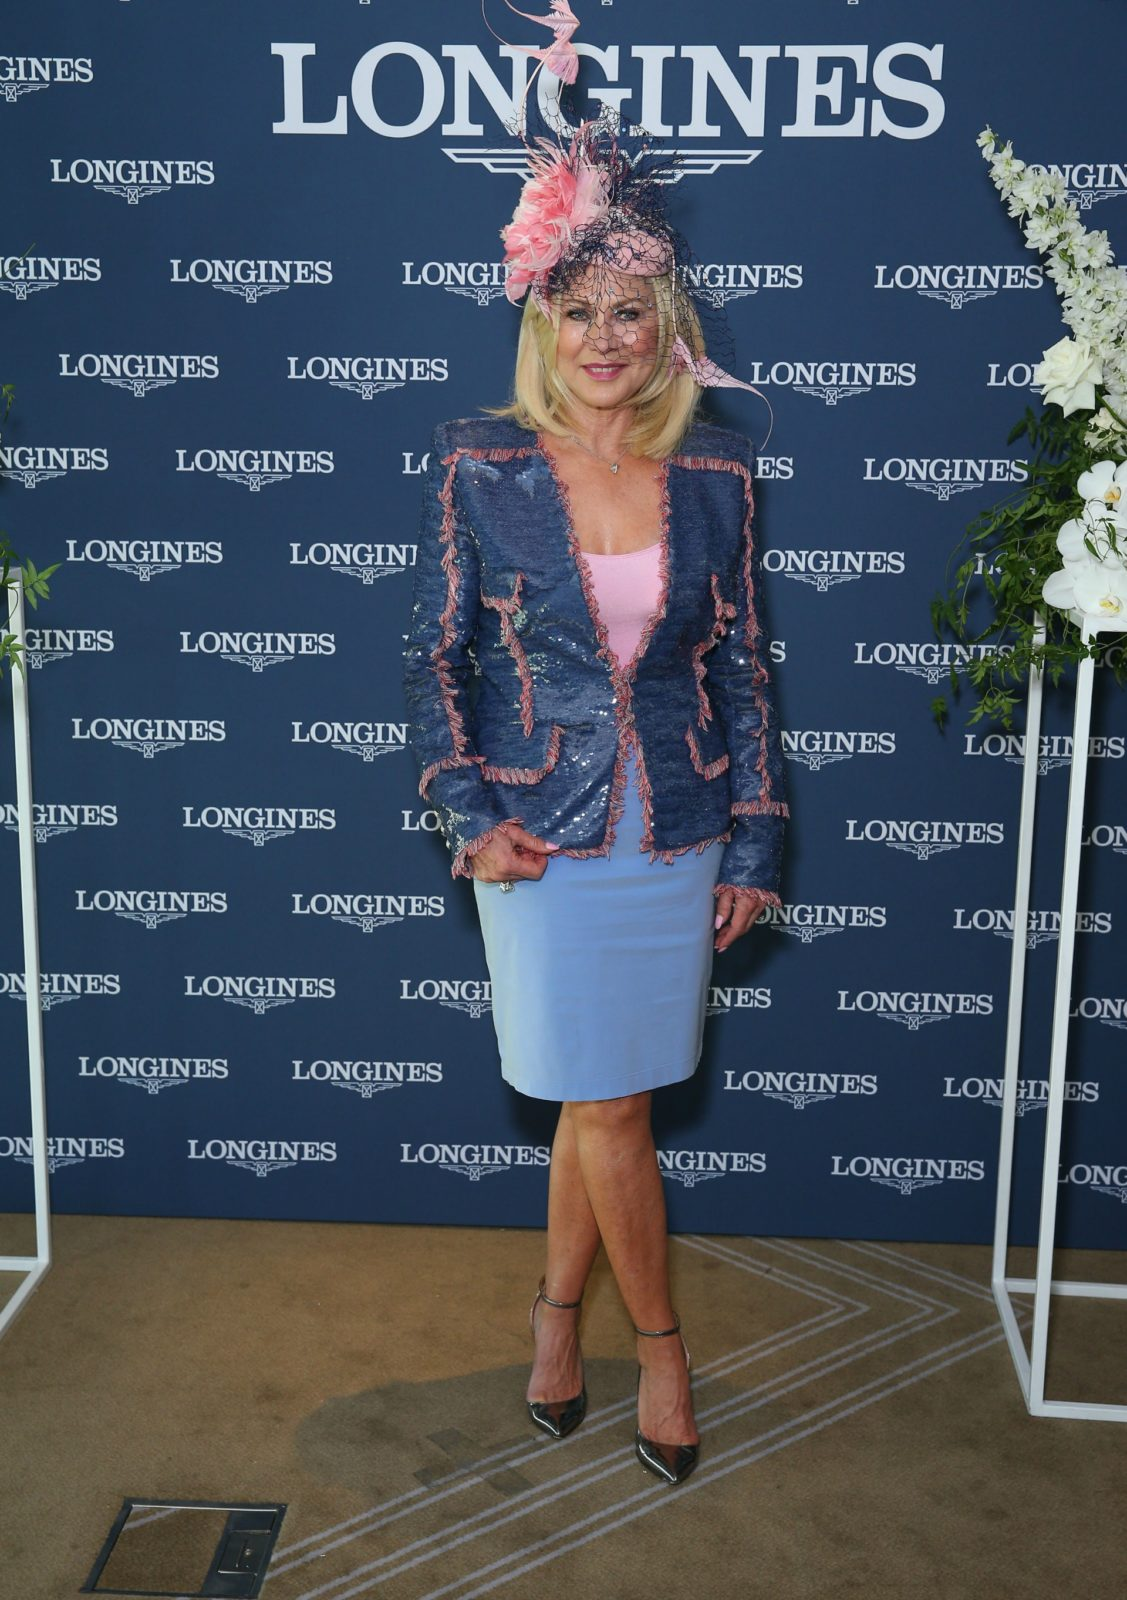 Kerri-Anne Kennerely was one of the special guests at Saturday's The Championships Day 2 at Royal Randwick Racecourse.